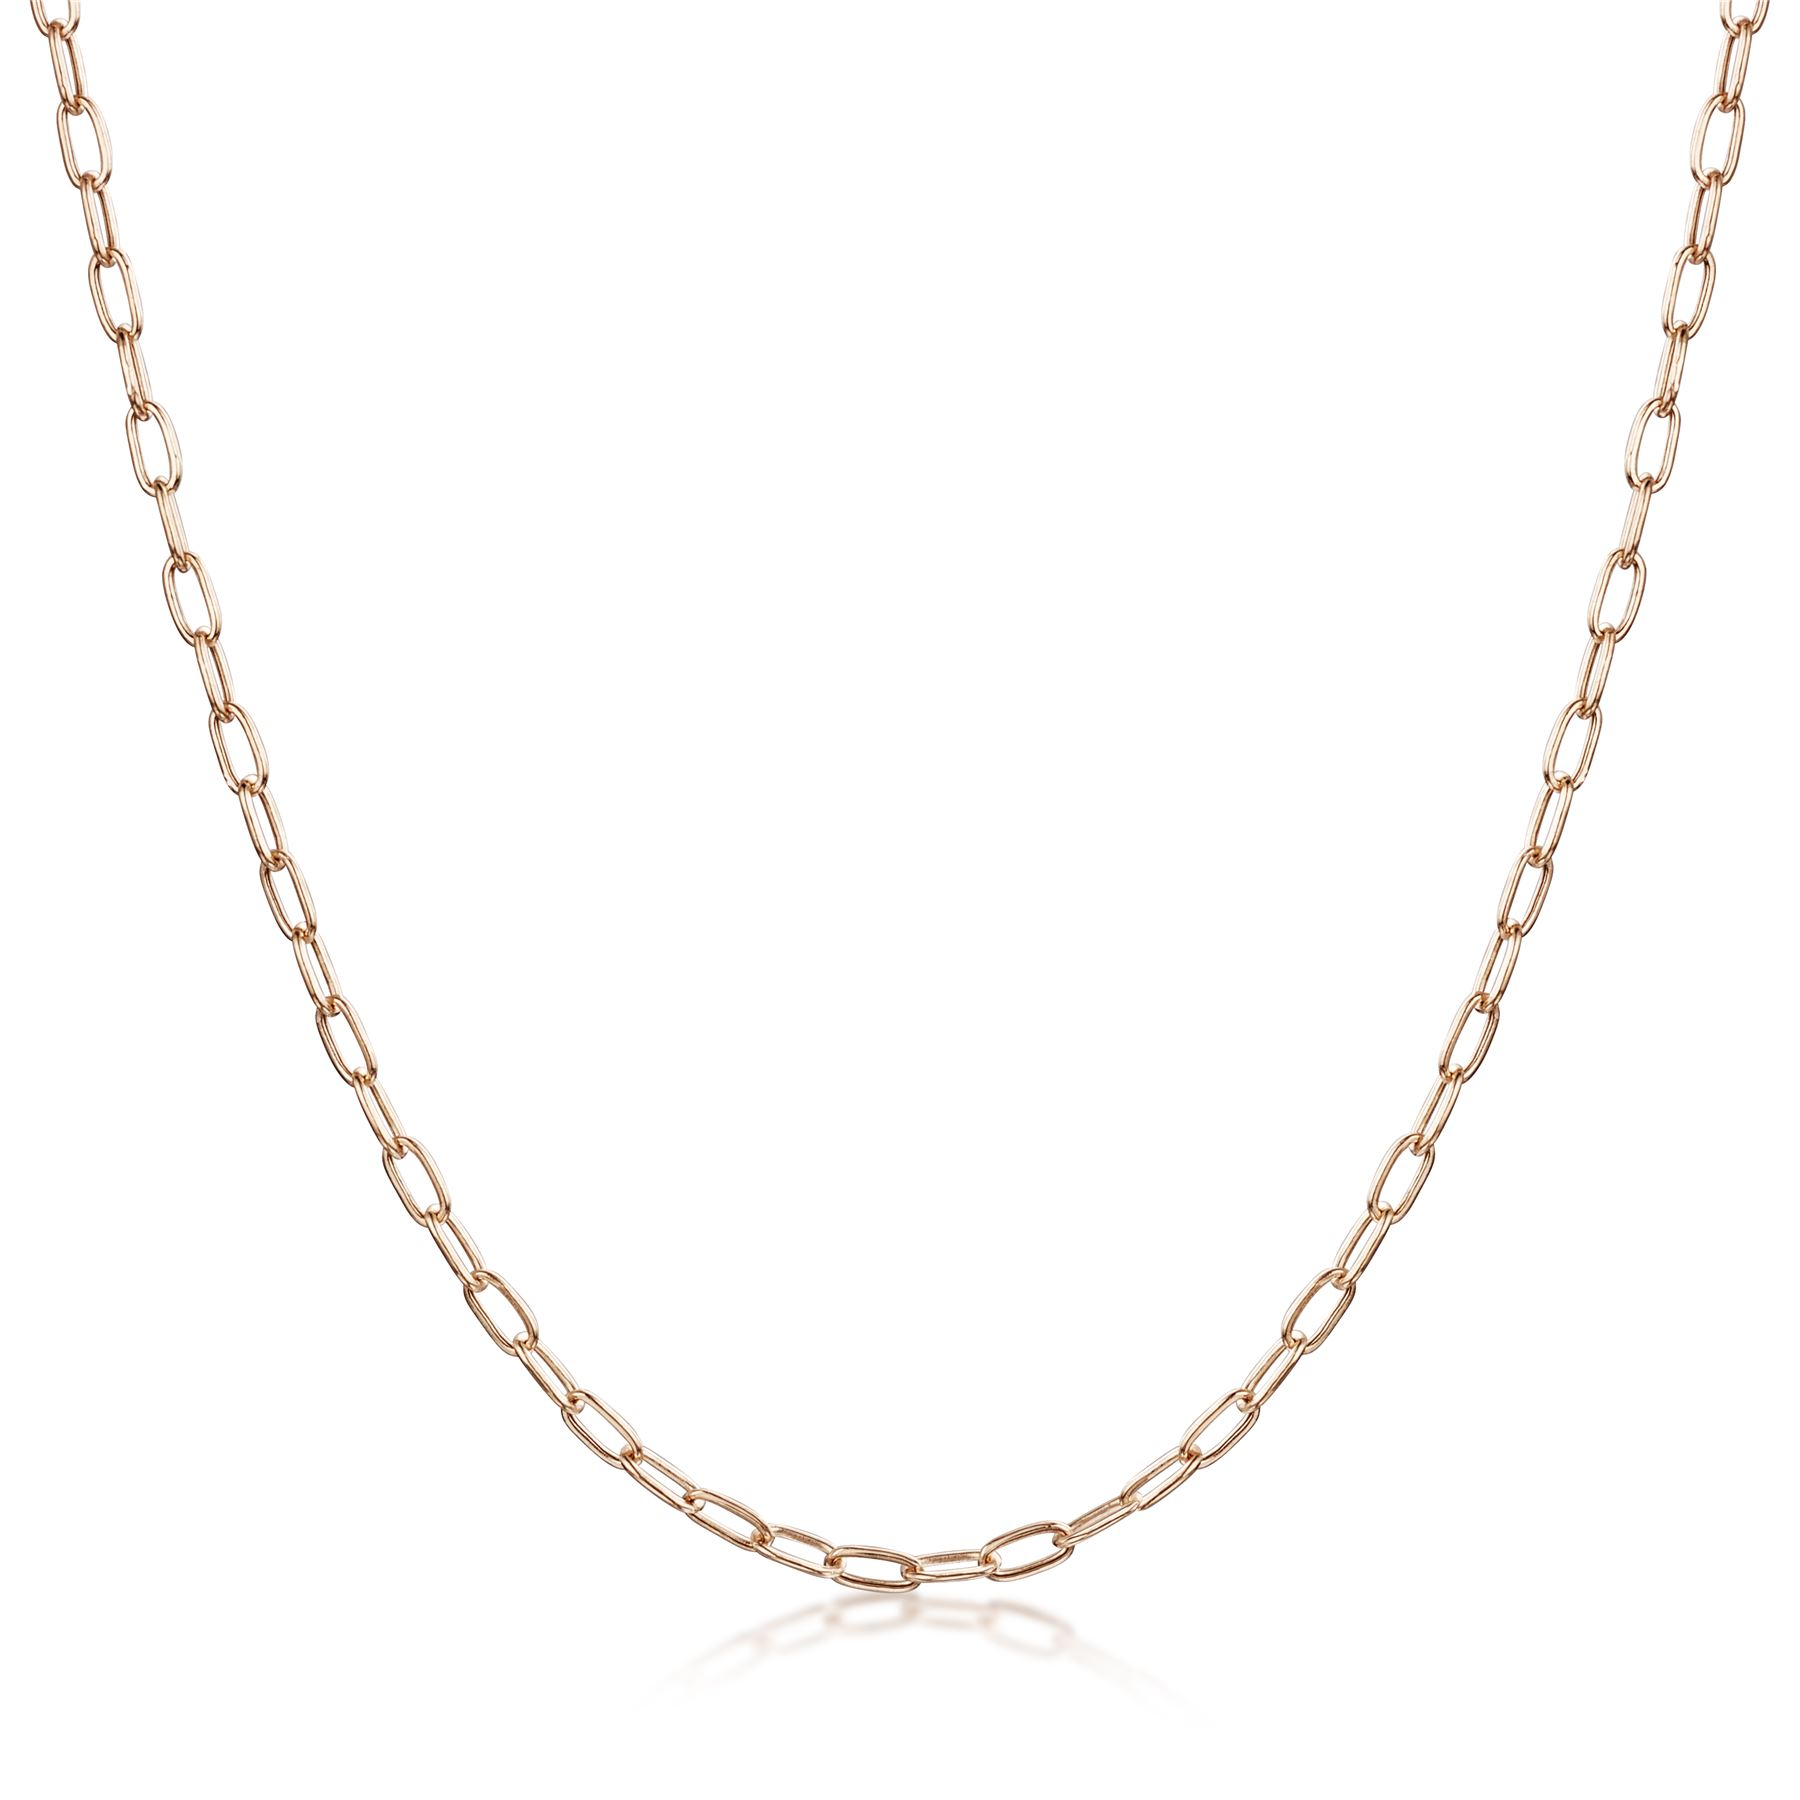 Amberta-Genuine-Solid-10k-Gold-Chain-Adjustable-Necklace-for-Women-and-Men thumbnail 9